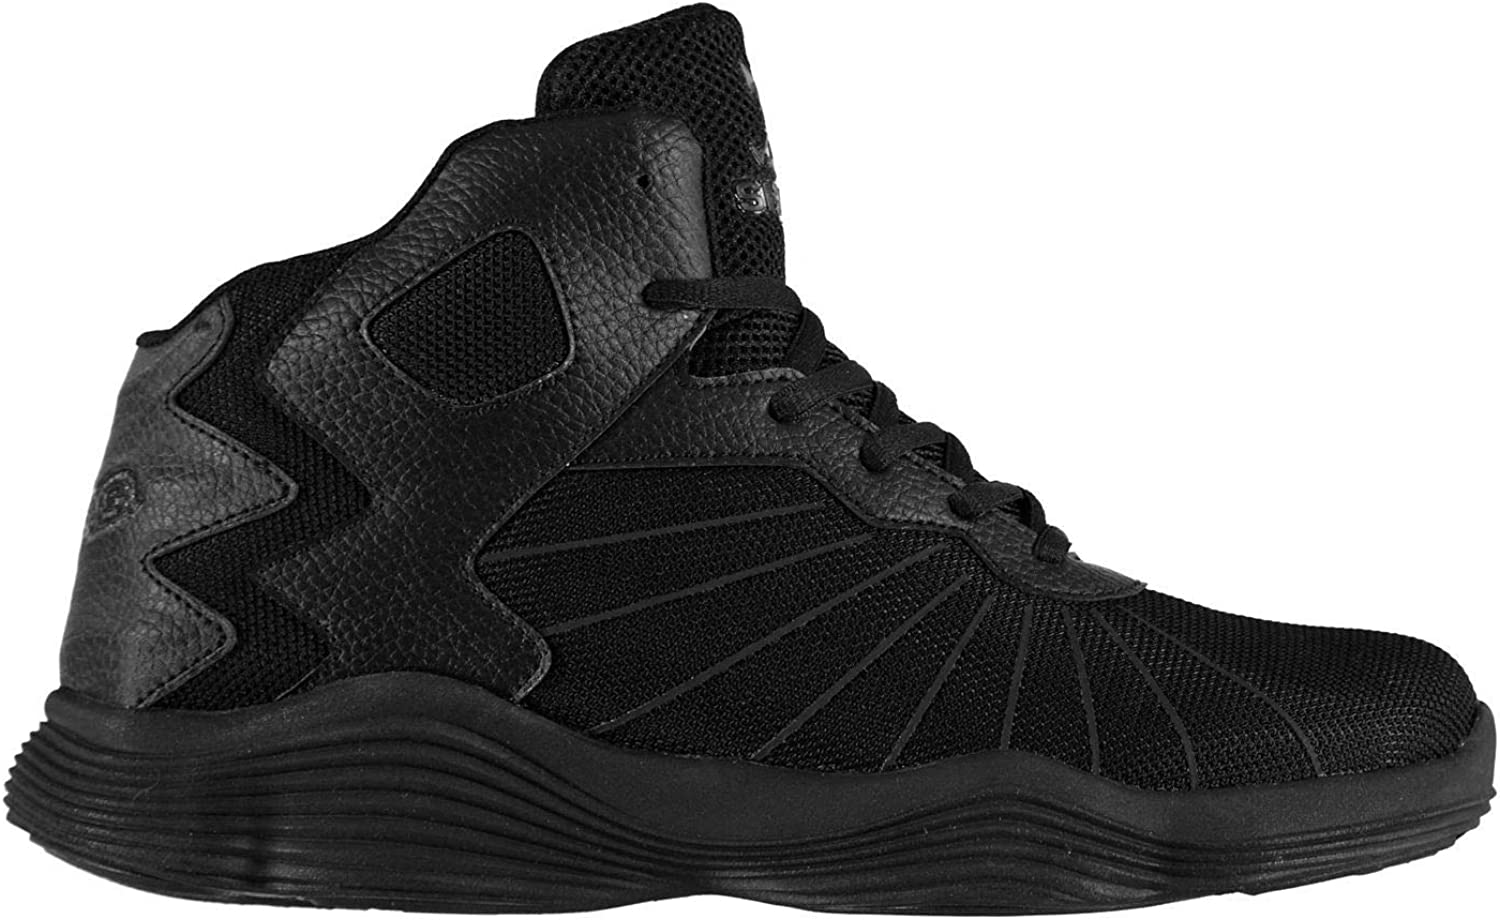 Shaq Half Court shoes Mens Black Trainers Sneakers Footwear